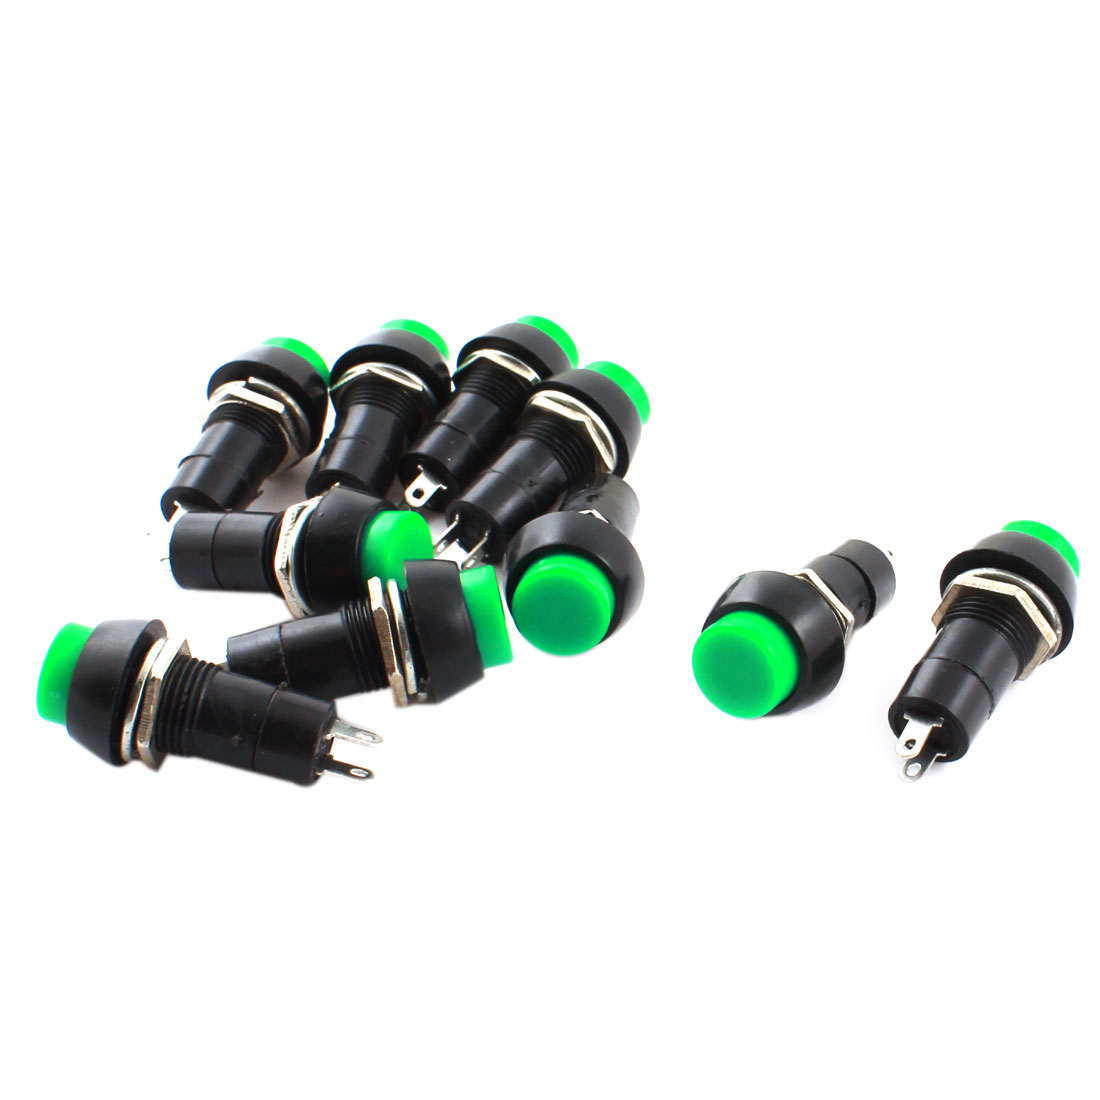 10Pcs SPST Momentary Control Green Push Button Switch AC 250V 3A